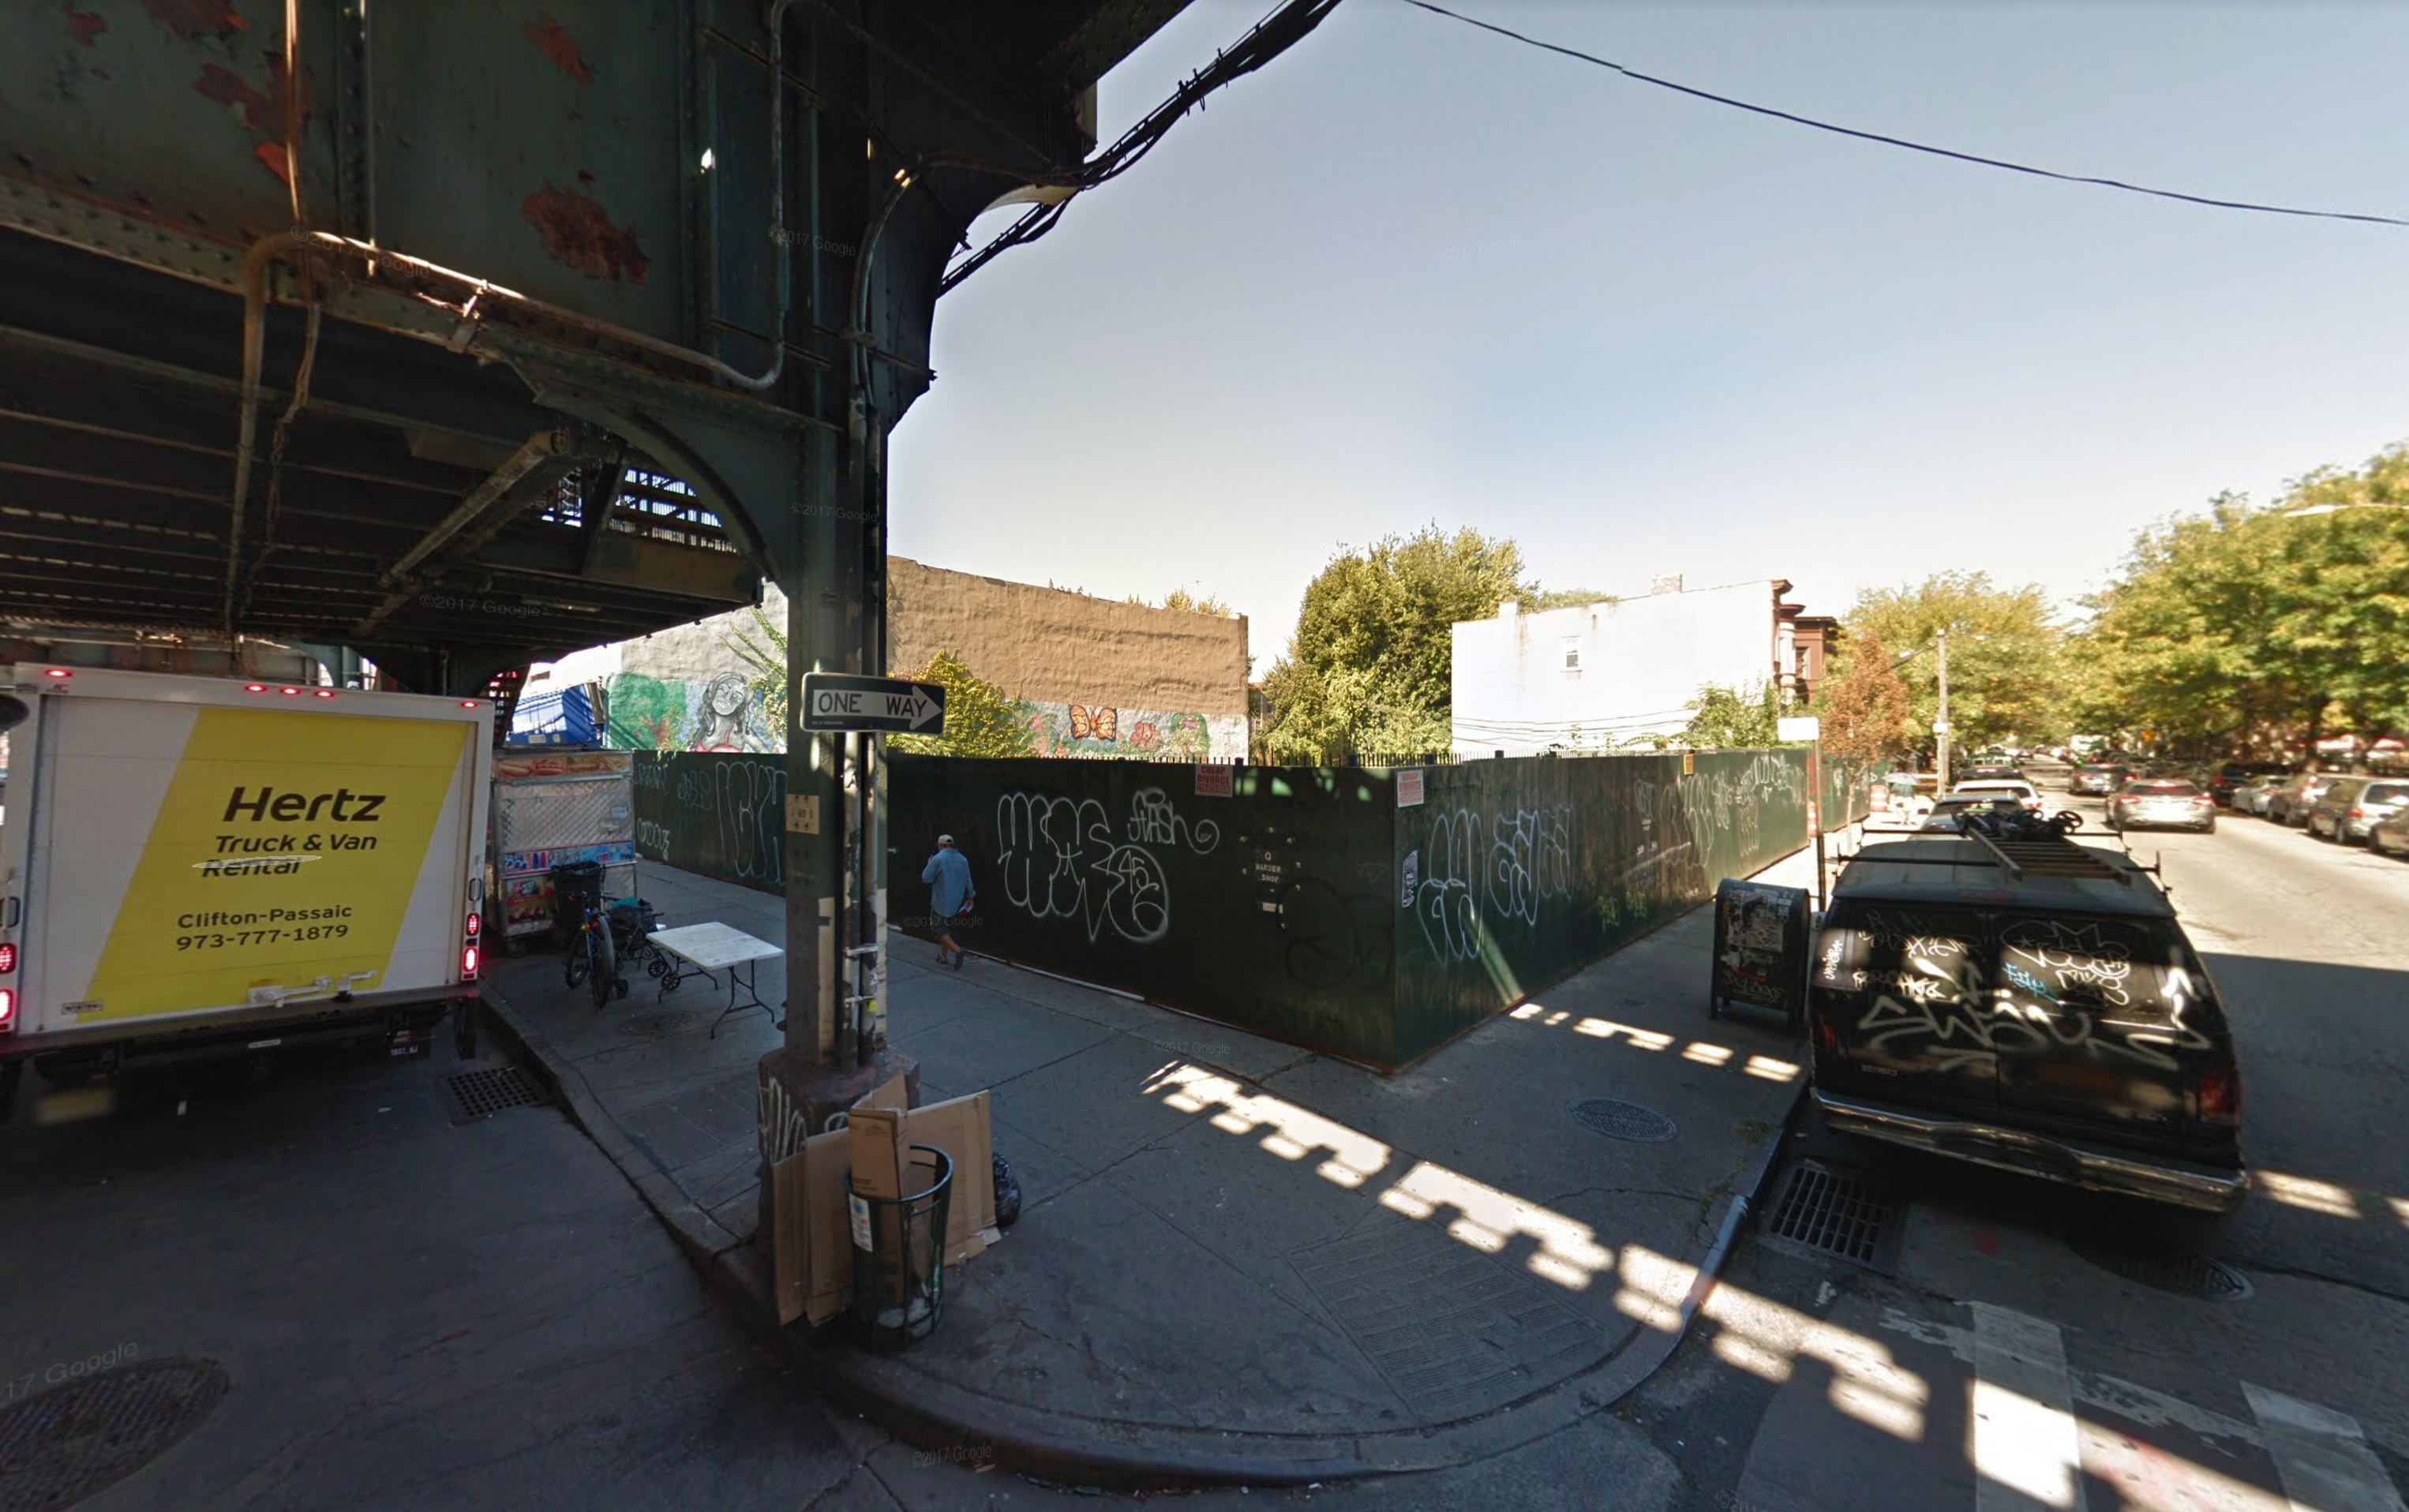 1333 Broadway, via Google Maps